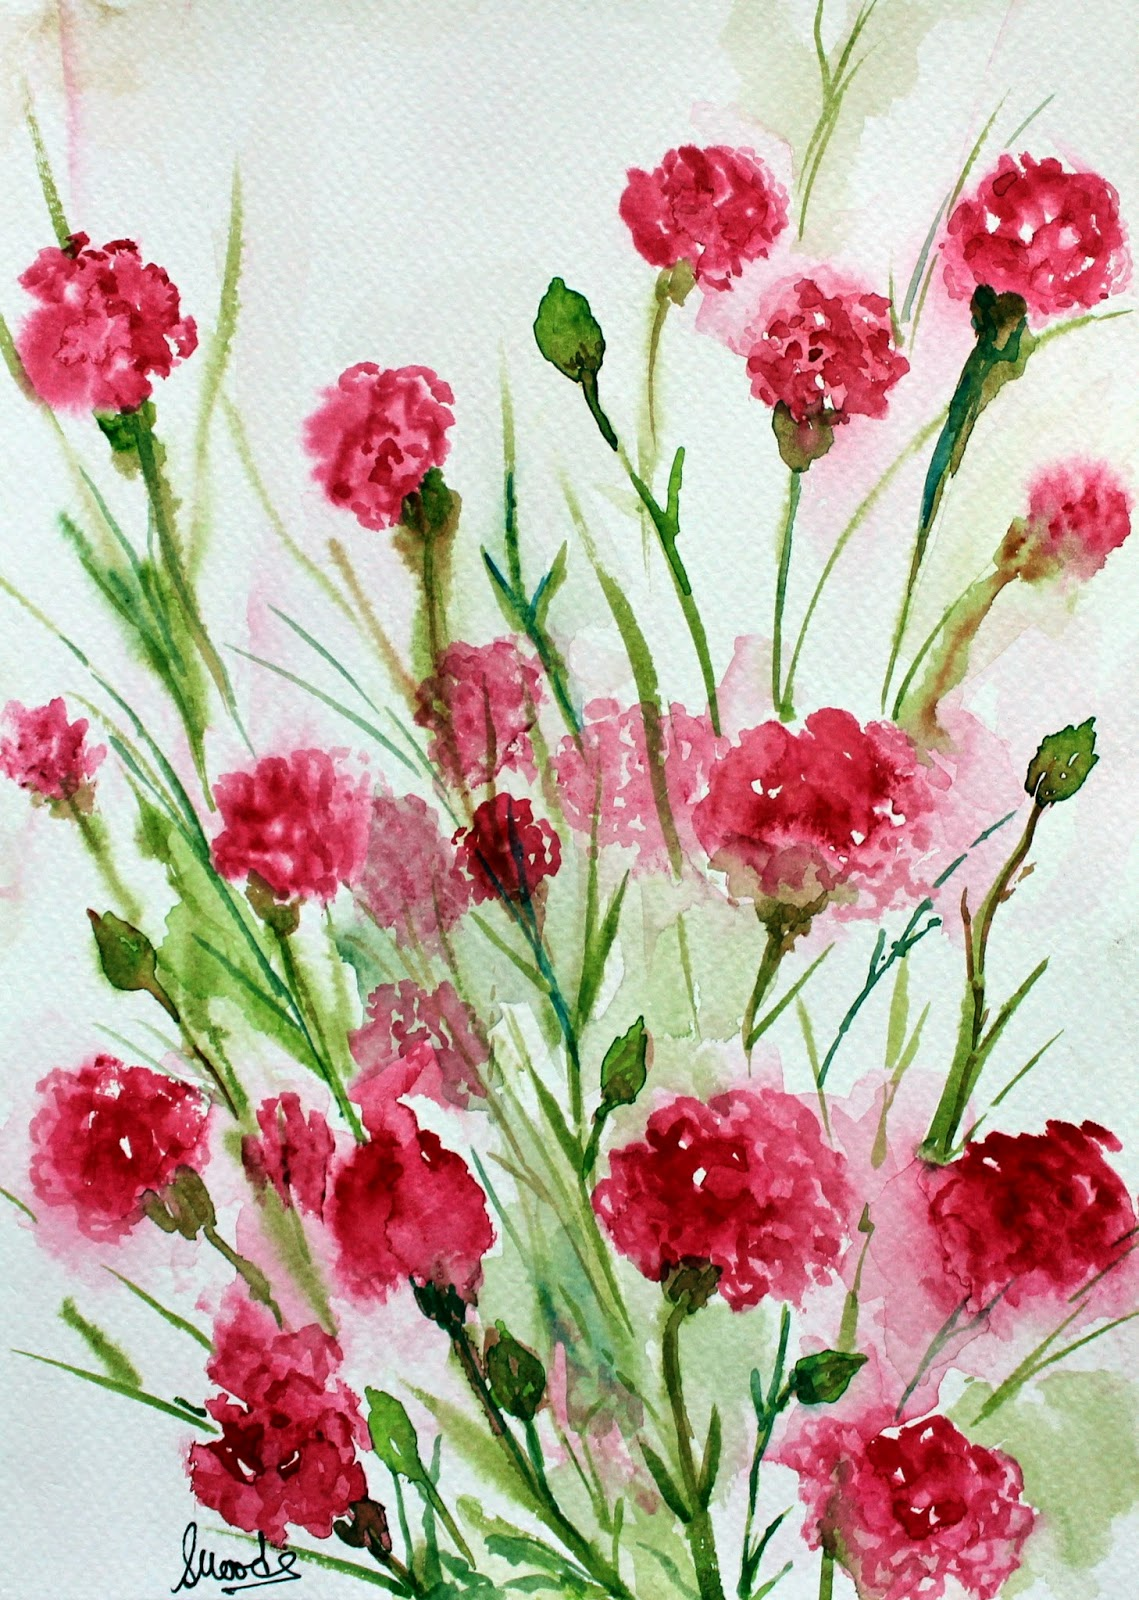 #pink #carnation #bouquet #flower #watercolors #painting